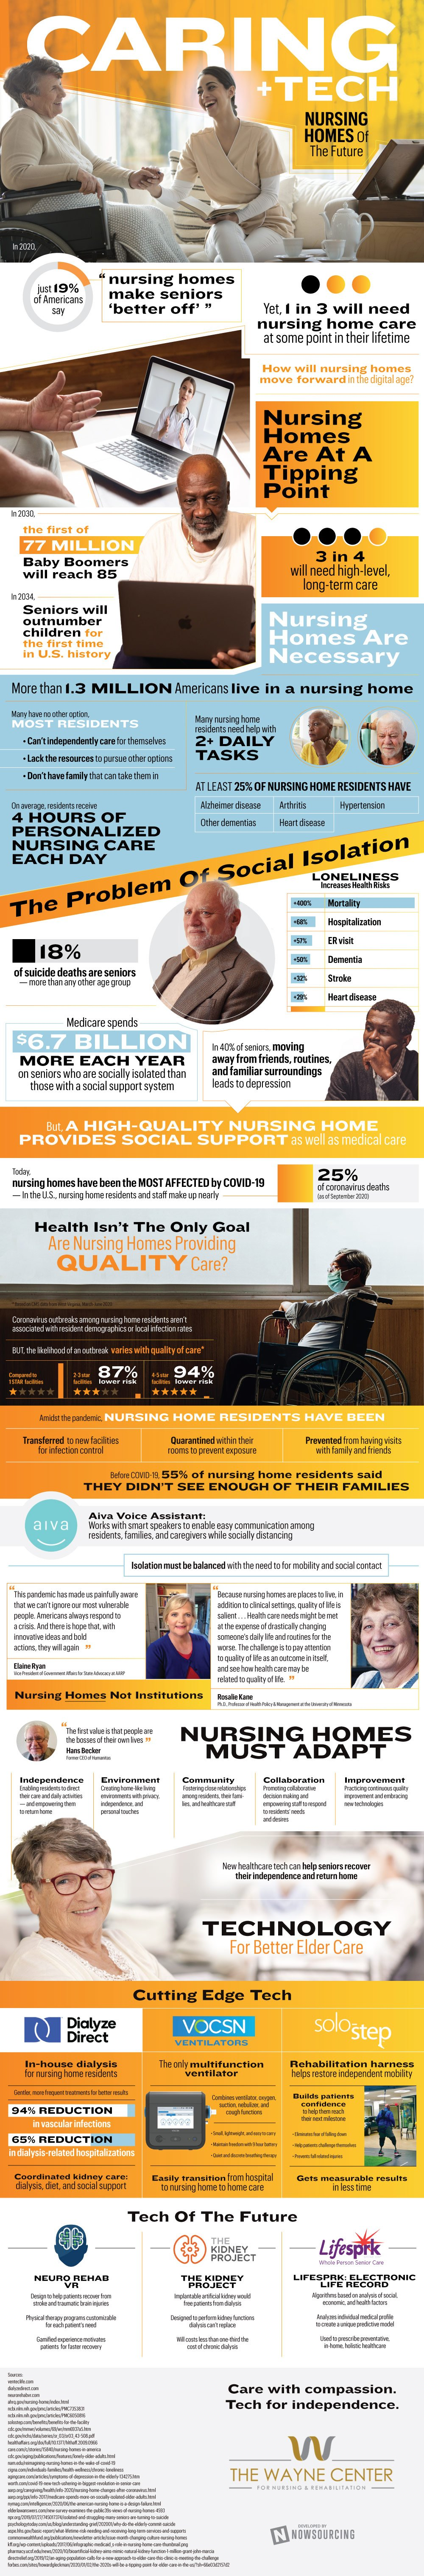 Innovations in Technology: Nursing Homes of the Future (Infographic)